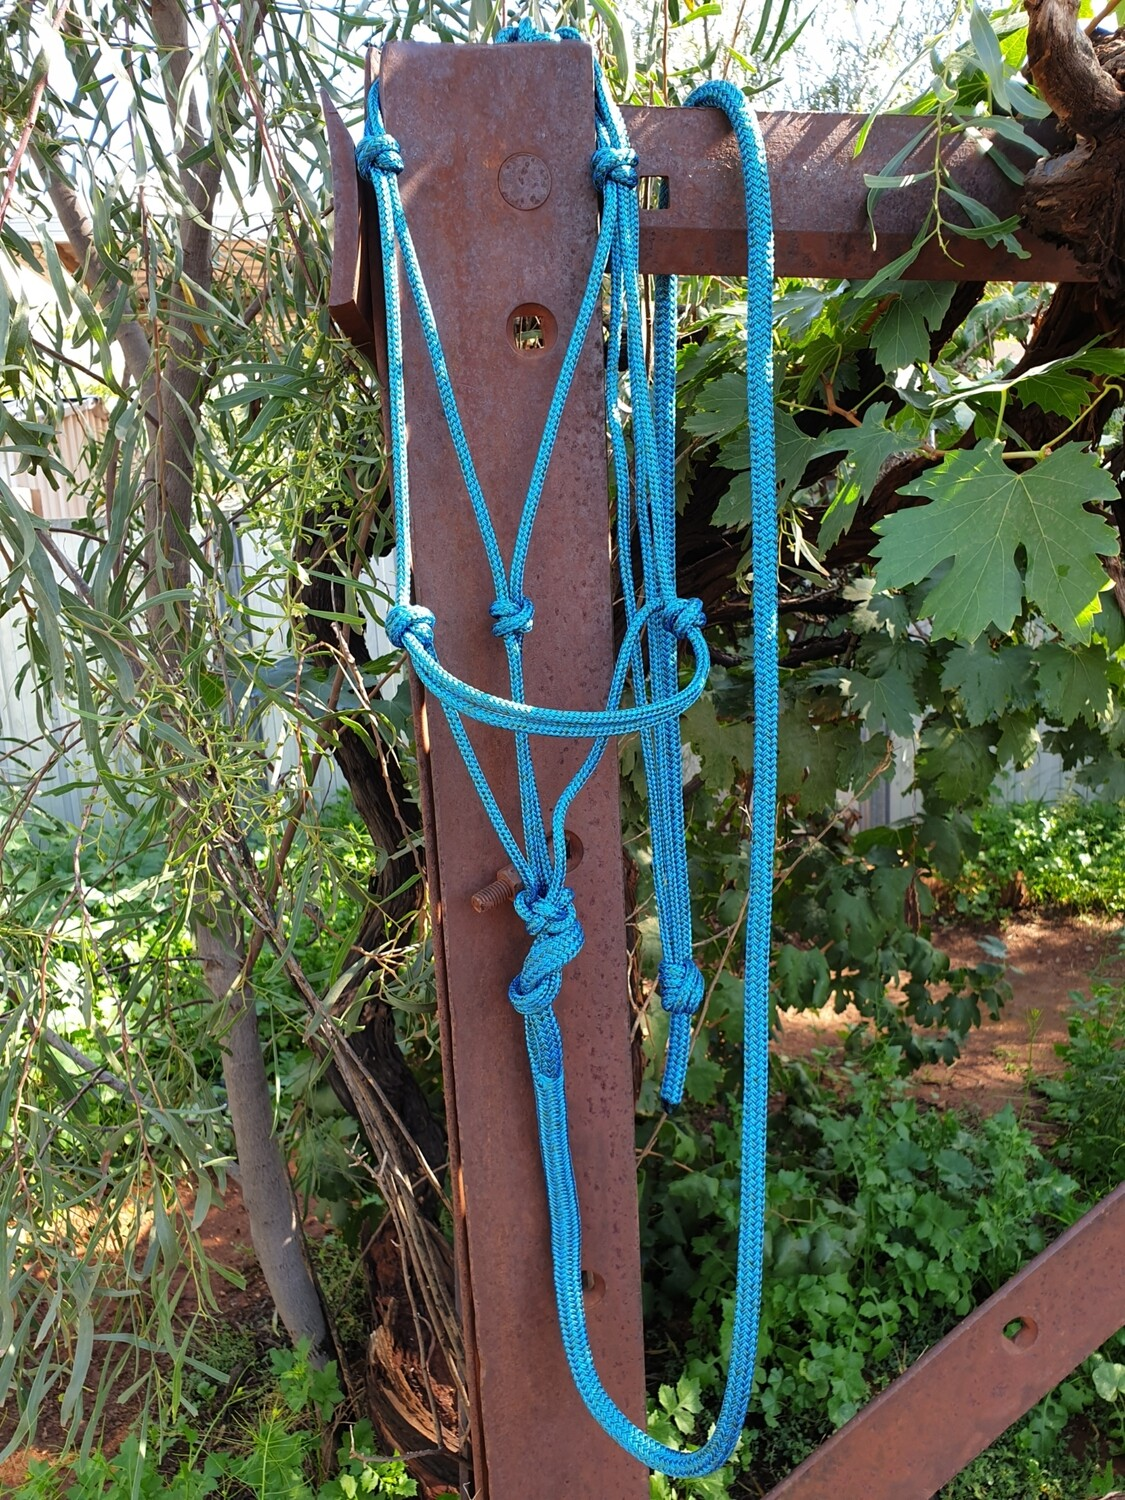 Mottled Green/Blue Horse Lead